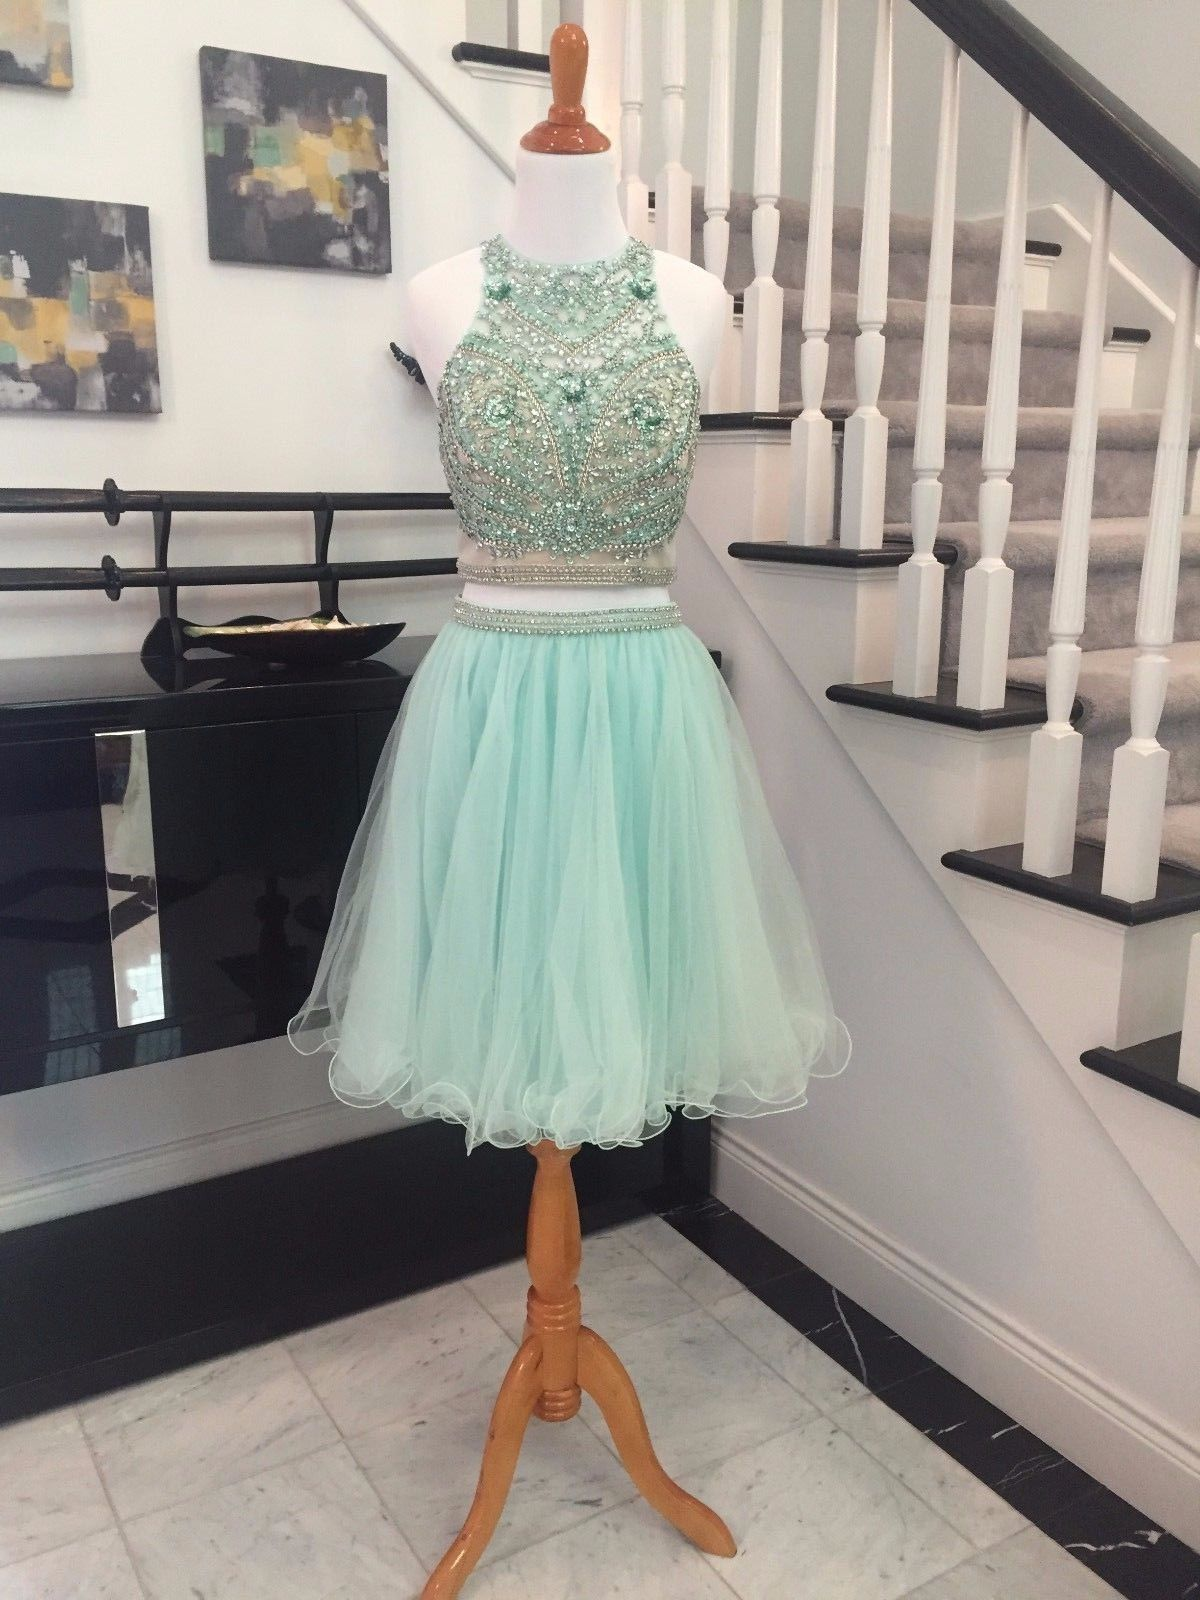 New Arrival 2 Piece Prom Dresses , Graduation Dresses 2017,Party Dresses,Evening Dresses, Short Prom Dress 2017,Beaded Homecoming Dresses